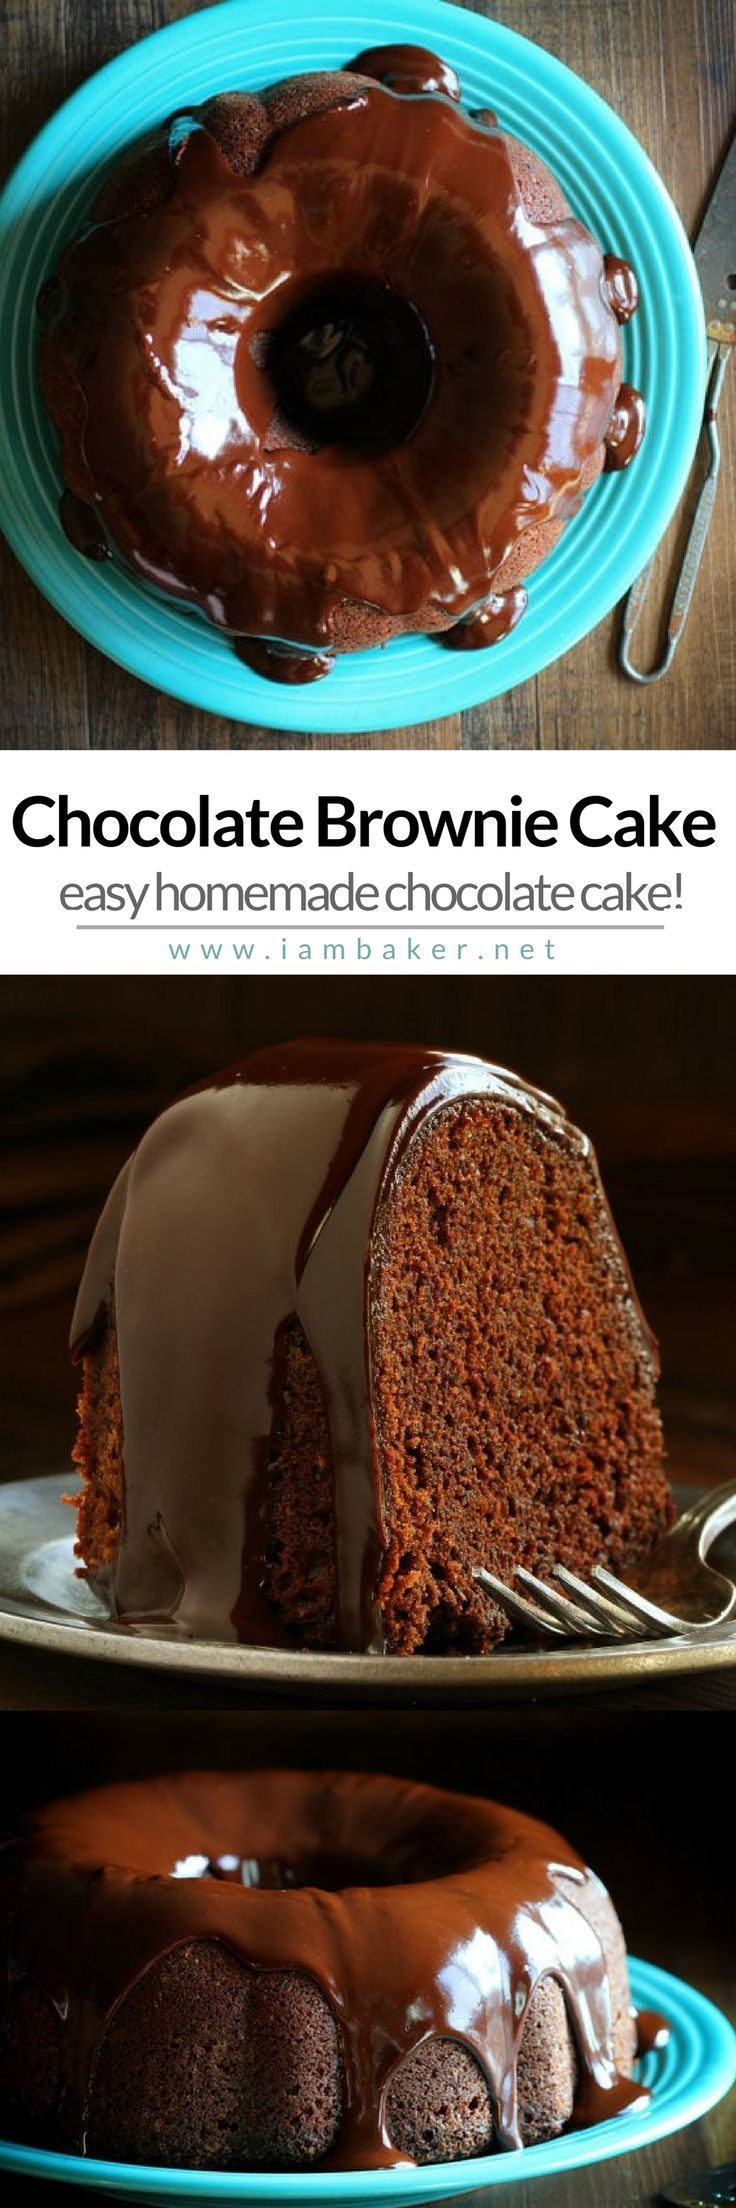 4181 best Cakes images on Pinterest | Petit fours, Cooking food and ...